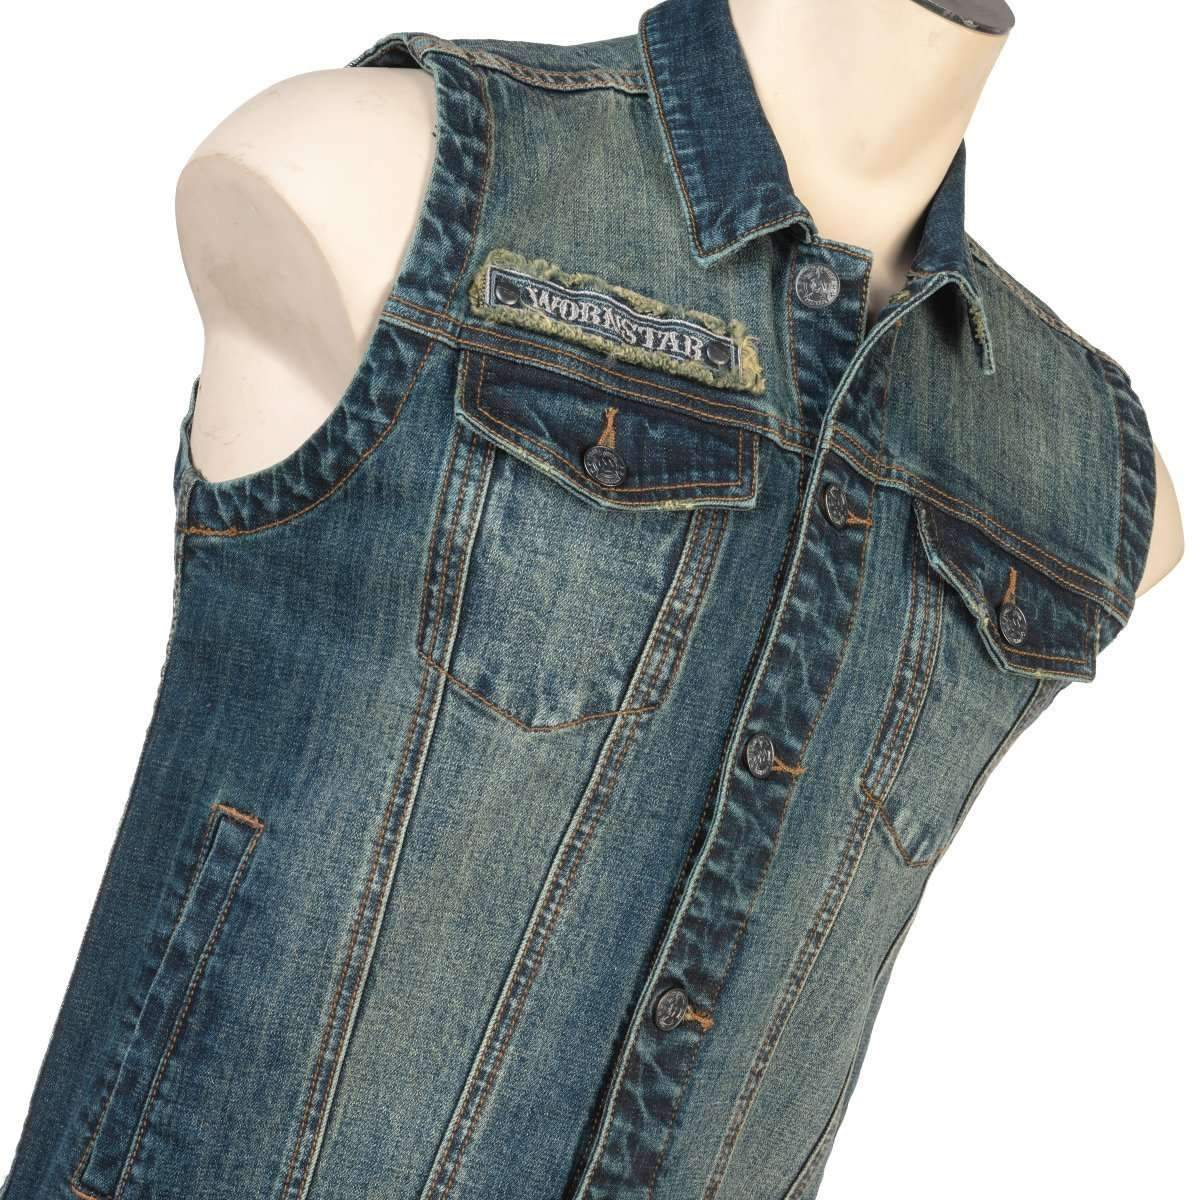 Wornstar Idolmaker Jacket - Vintage Blue Denim Sleeveless